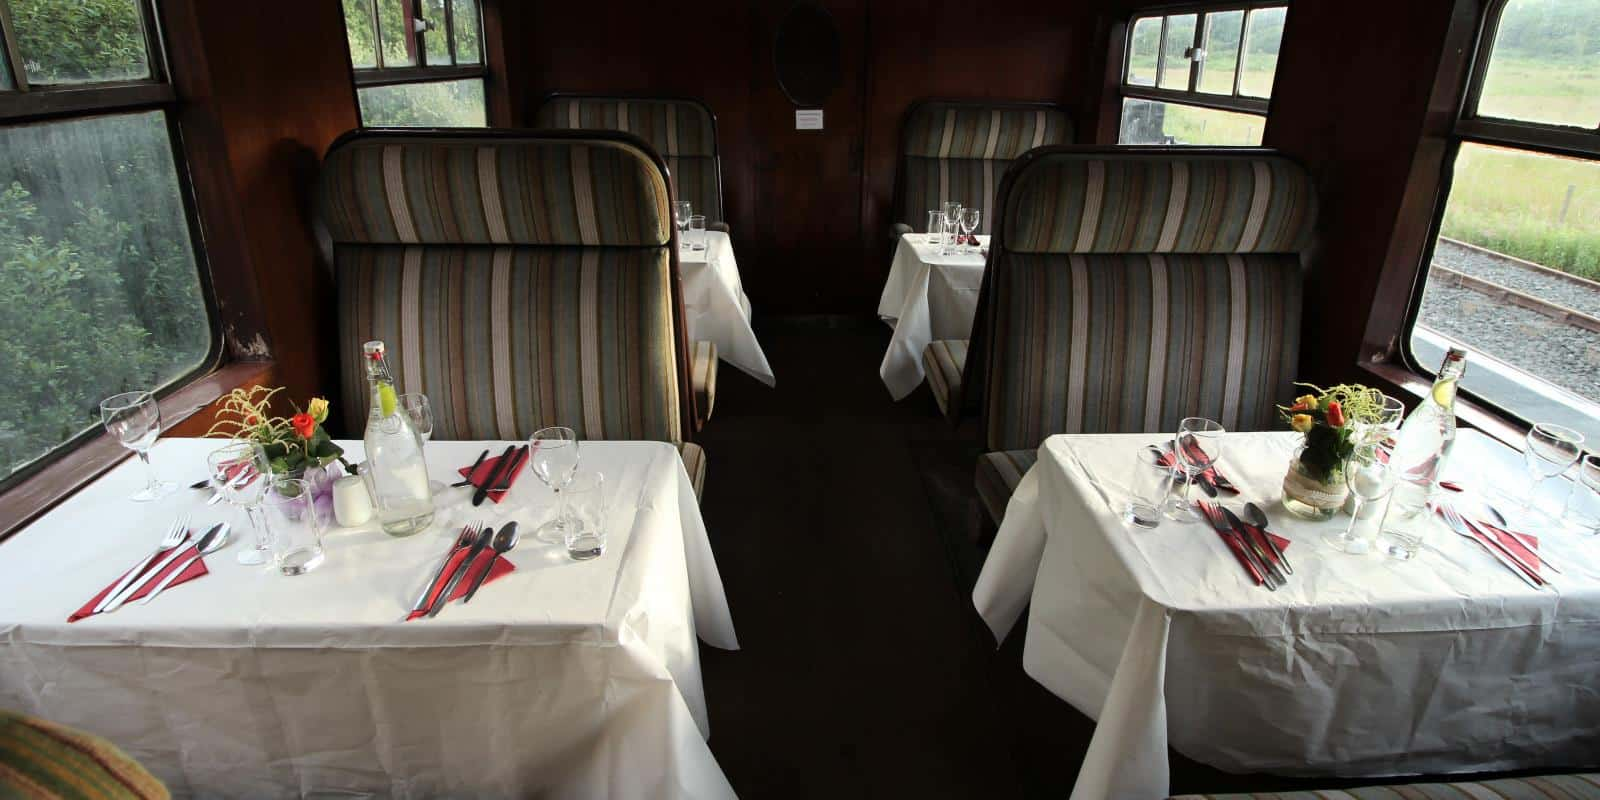 The buffet carriage, all set for a nice meal